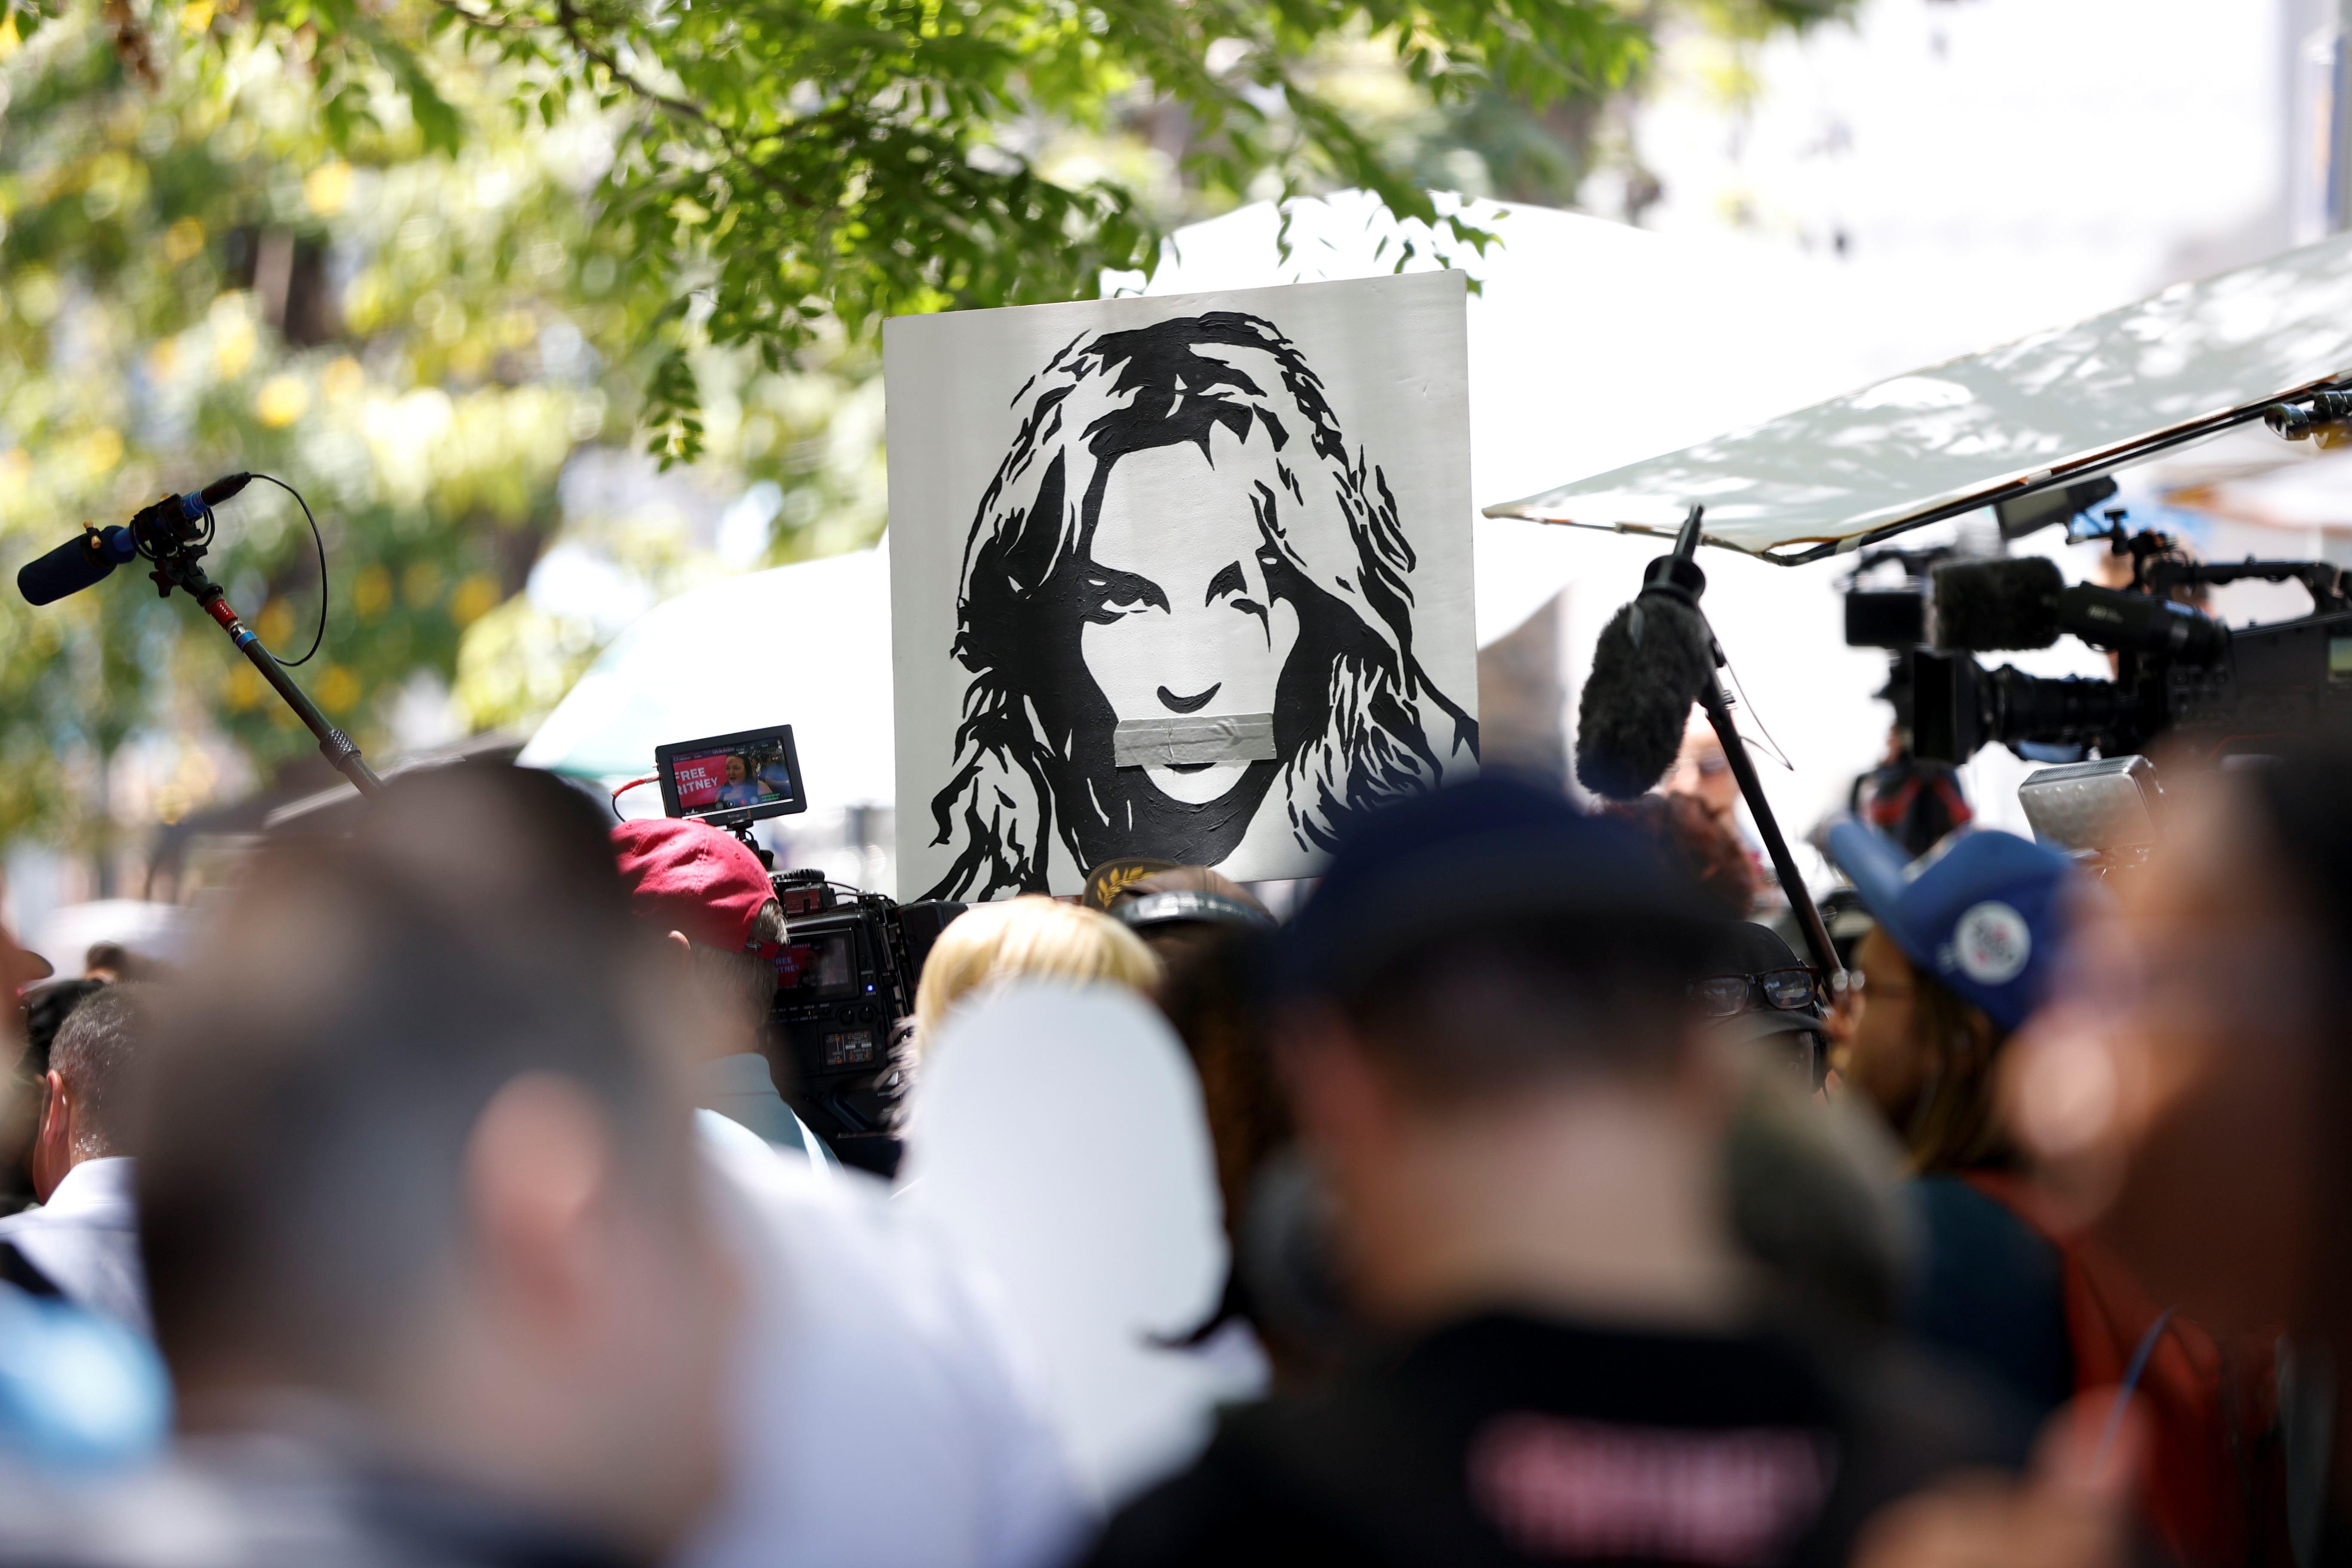 People protest in support of pop star Britney Spears on the day of a conservatorship case hearing at Stanley Mosk Courthouse in Los Angeles, California, U.S. June 23, 2021. REUTERS/Mario Anzuoni